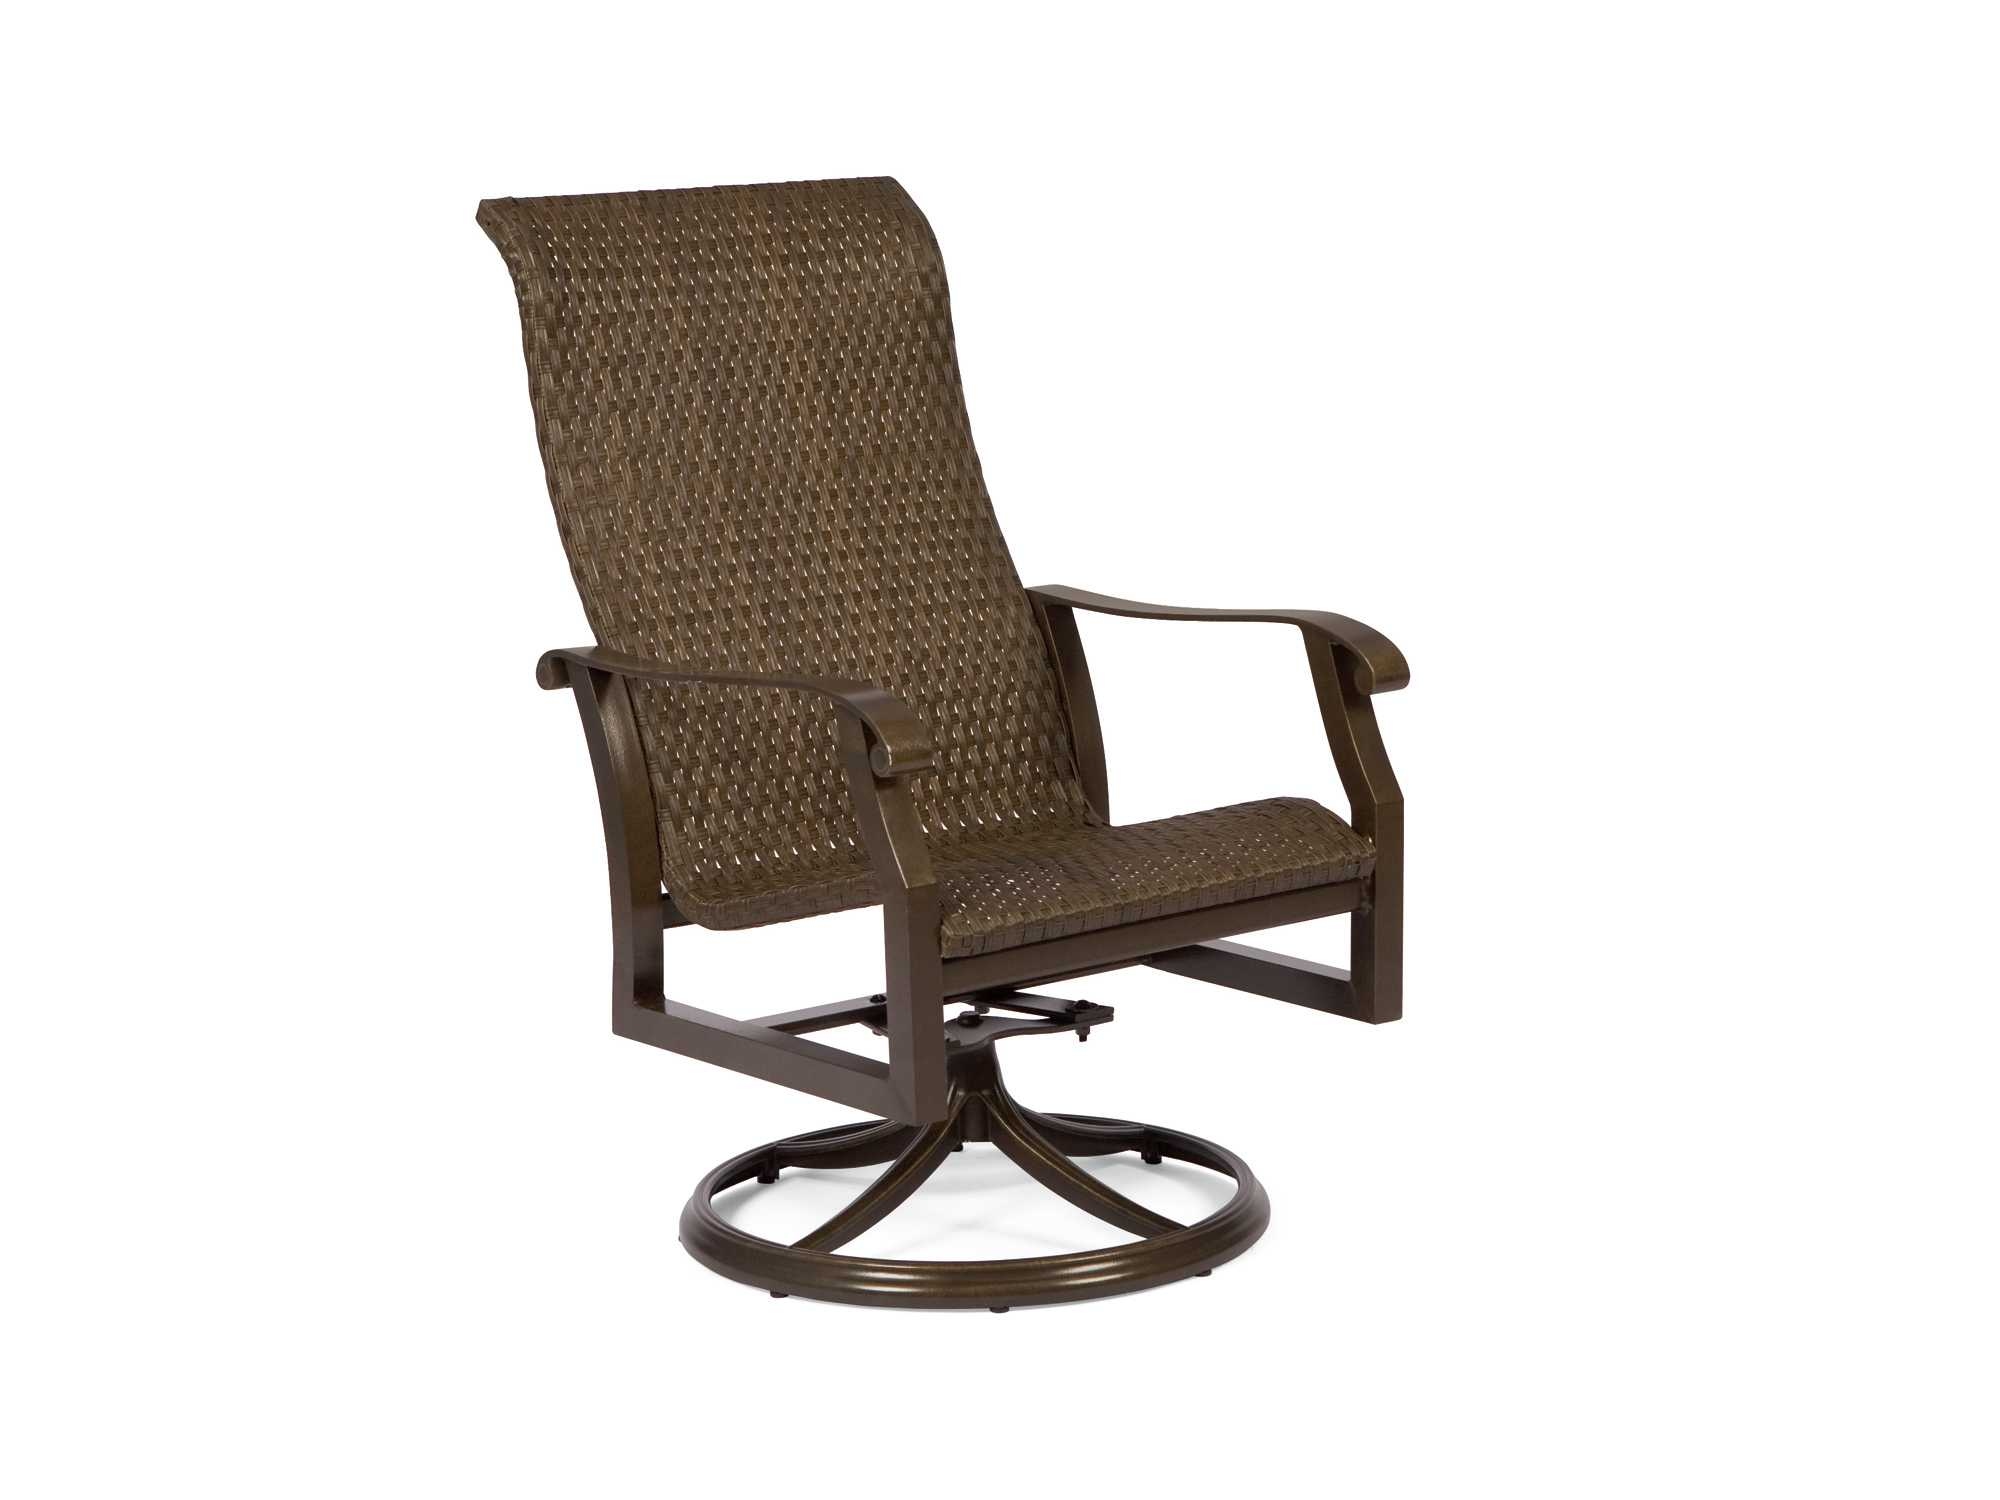 Woodard cortland woven round weave wicker high back swivel for Round patio chair